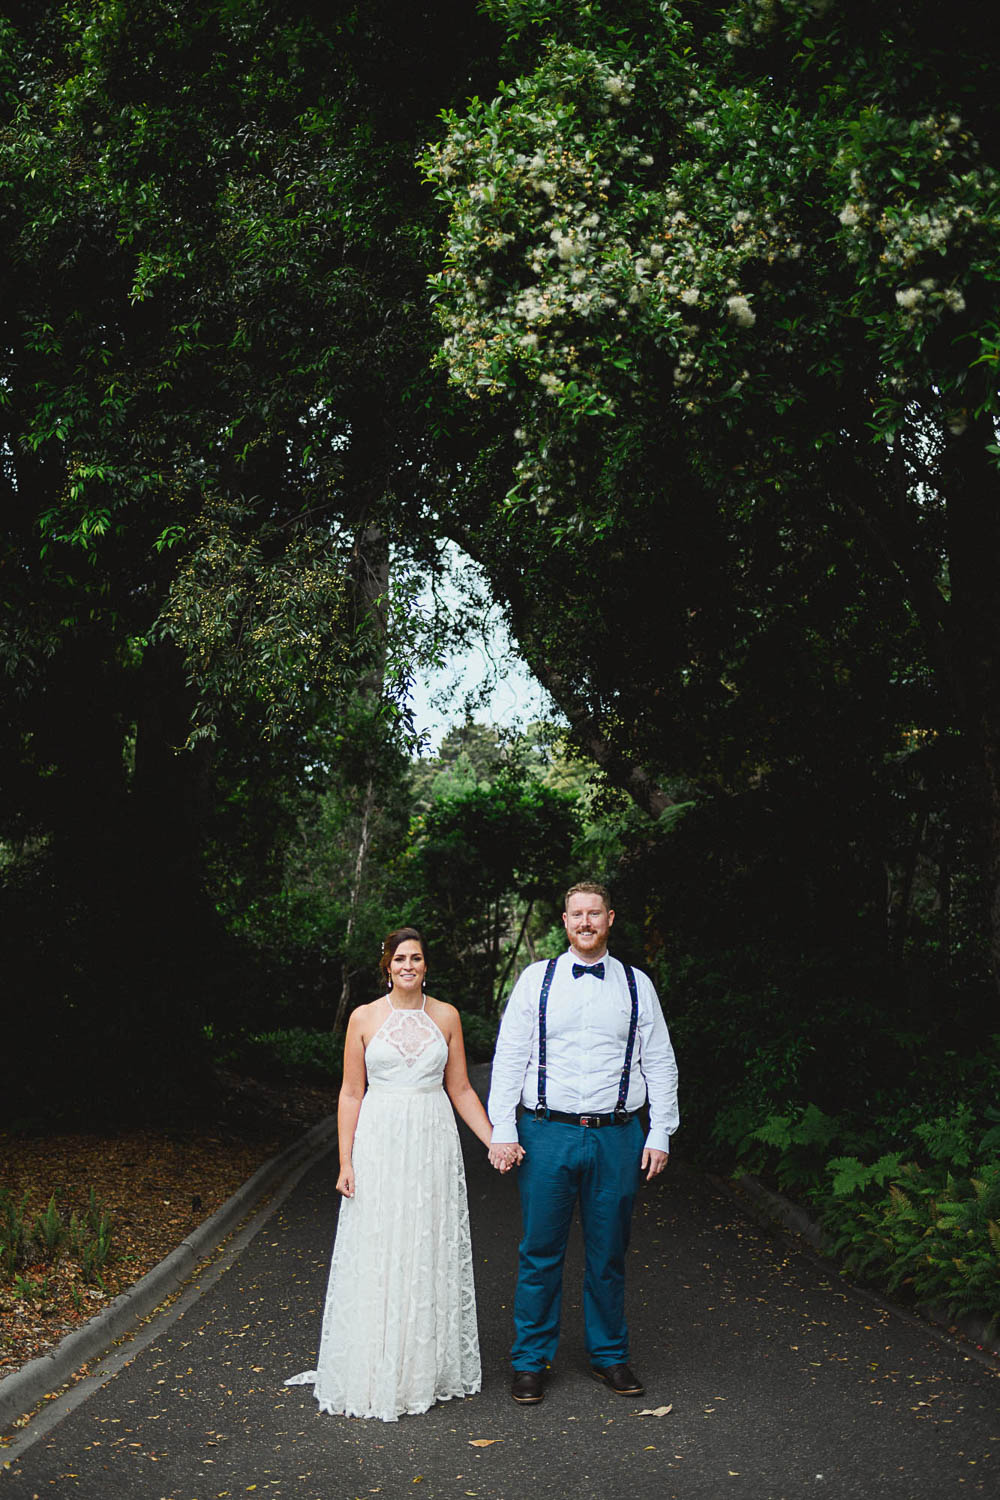 Bohemian Prints - Bohemian Wedding Jess and Matt-11.jpg